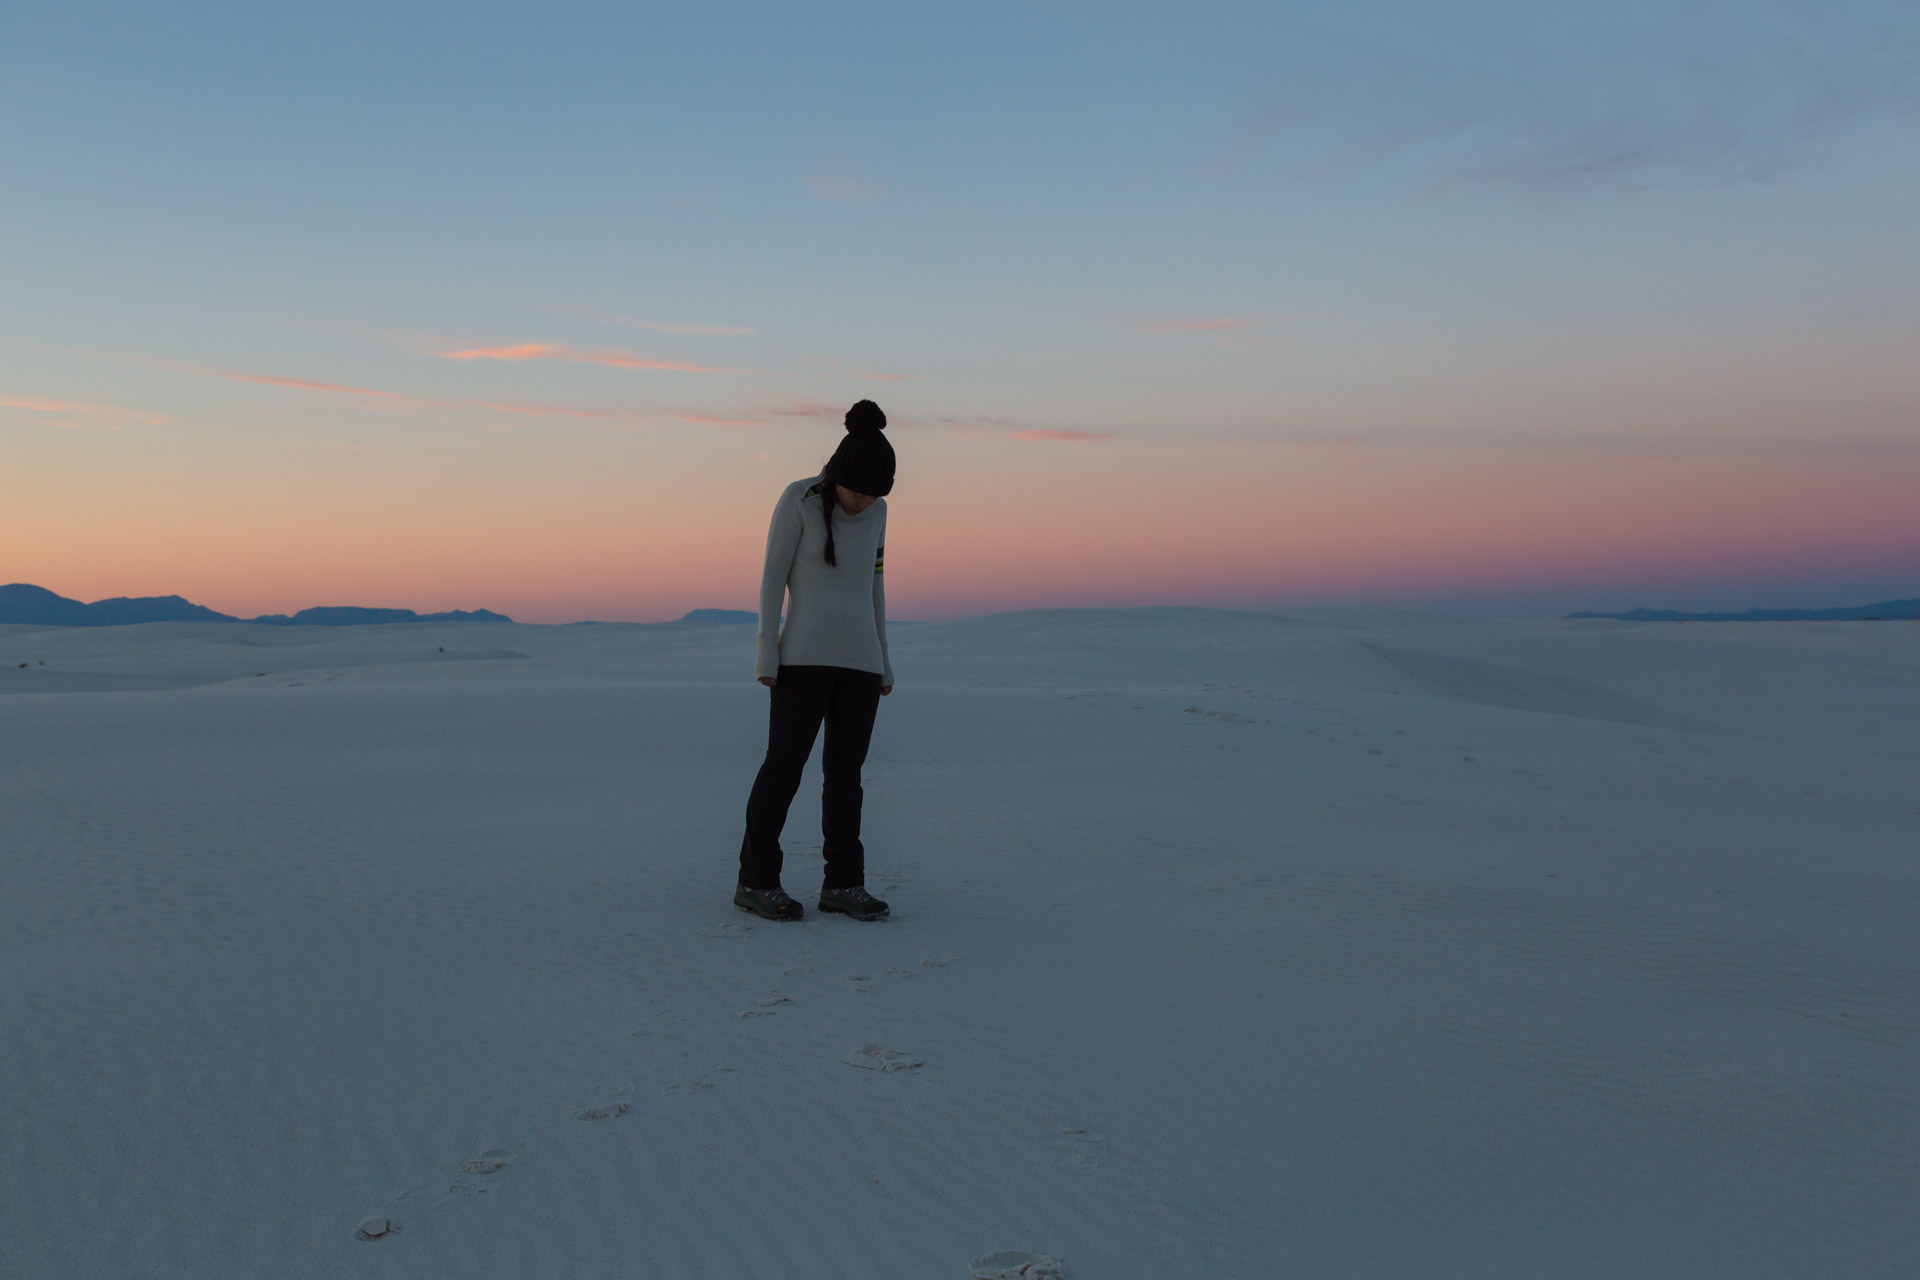 In A Sunset At White Sands (down far)